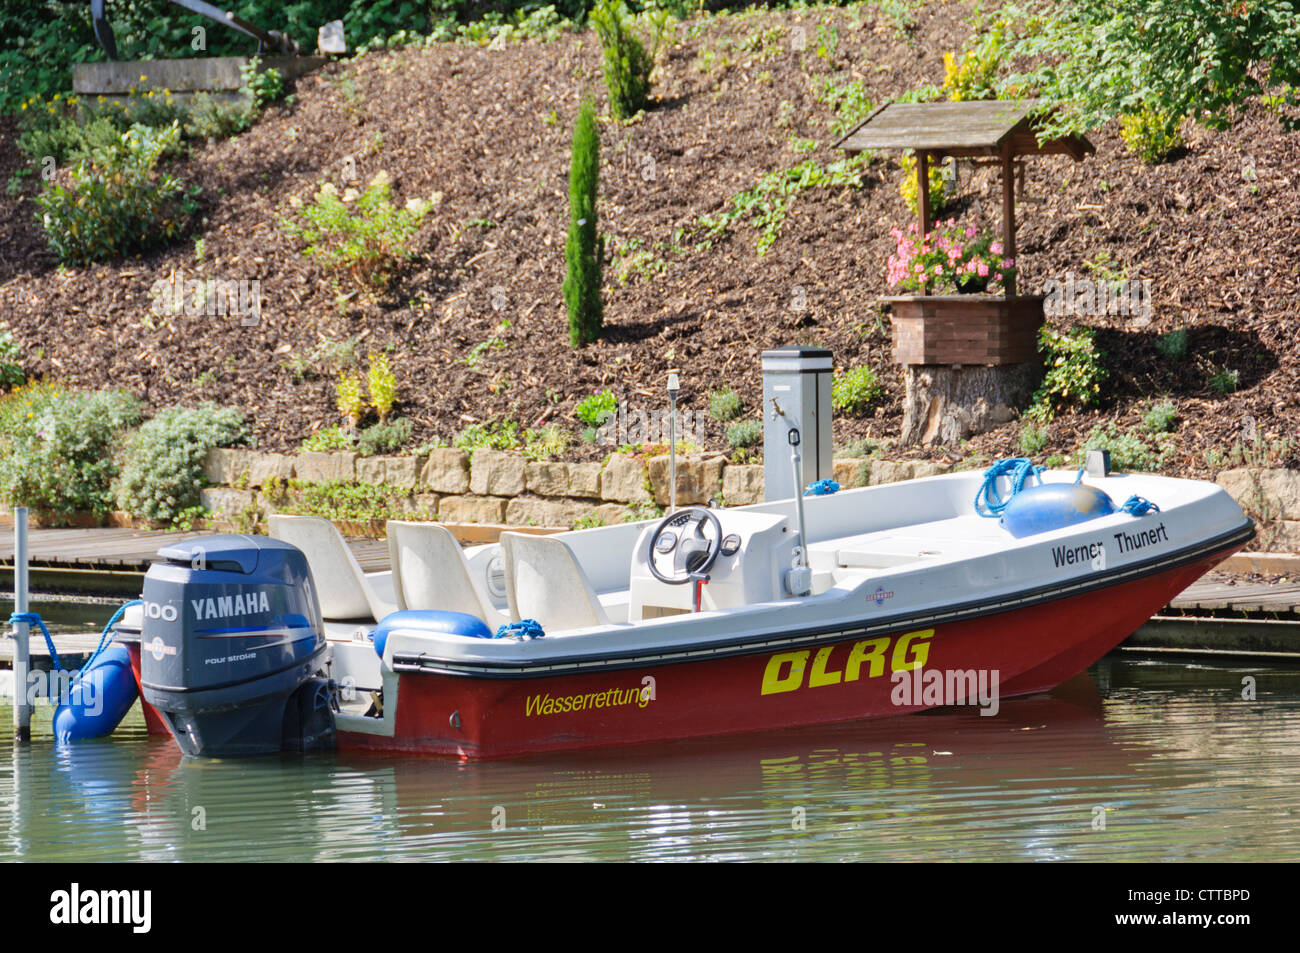 Rescue boat of the DLRG Deutsche Lebens-Rettungs-Gesellschaft e.V. German Lifeguard Association life saving organization - Stock Image